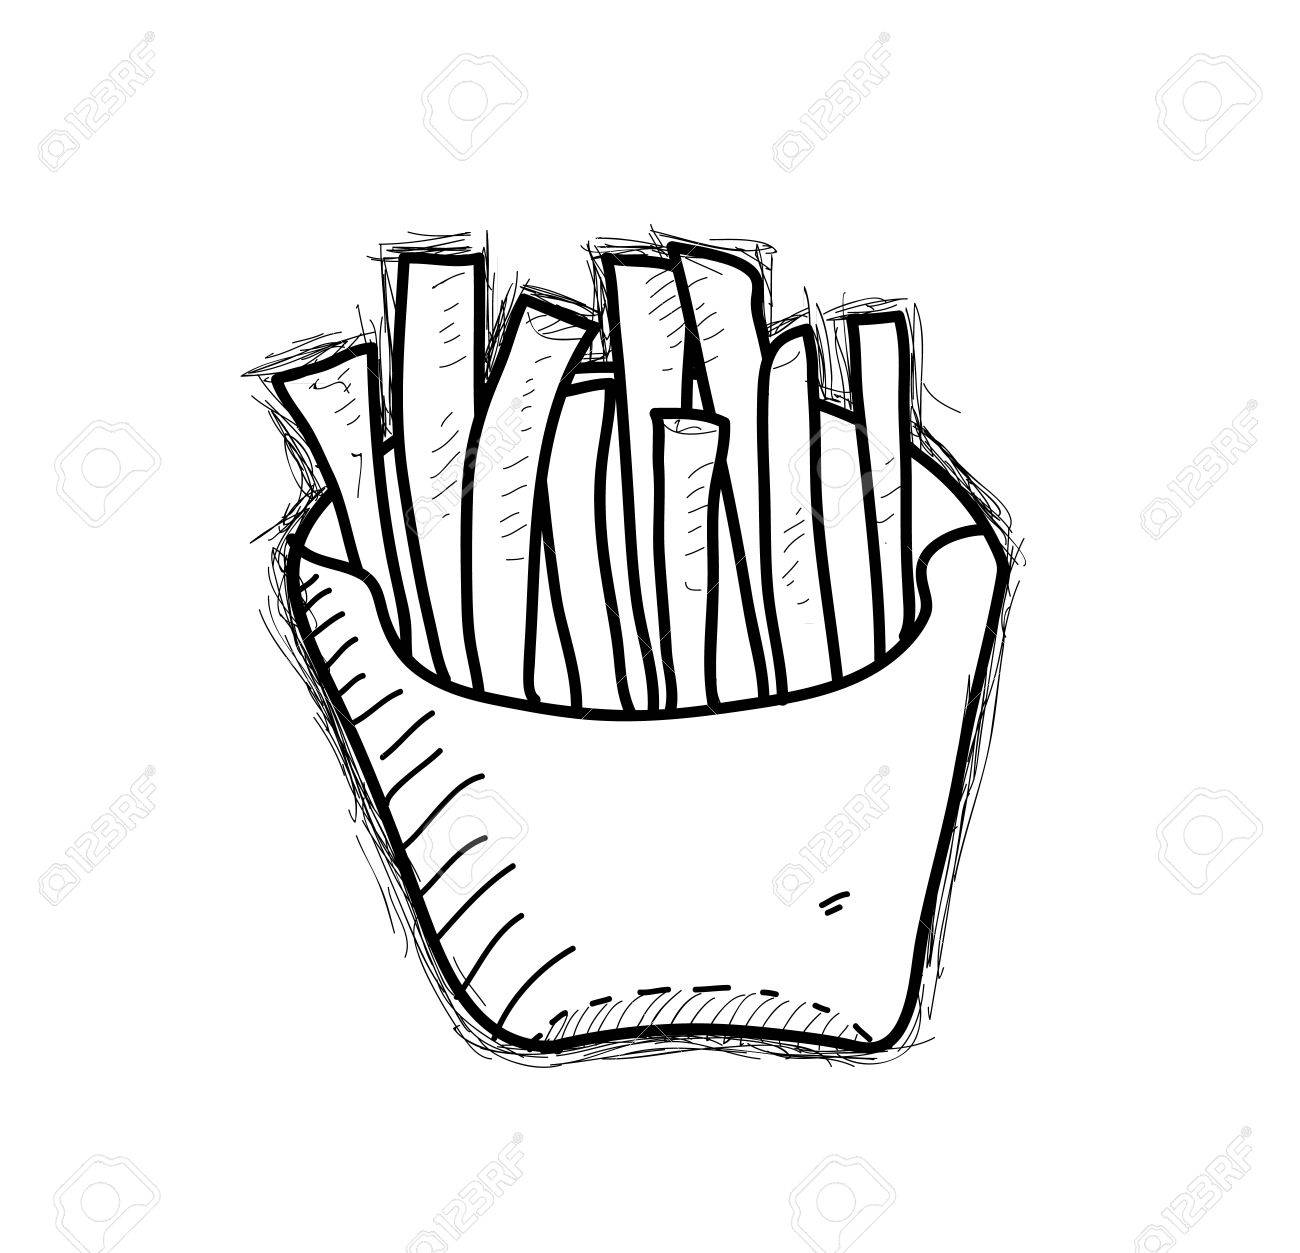 1300x1253 French Fries Doodle, A Hand Drawn Vector Doodle Illustration